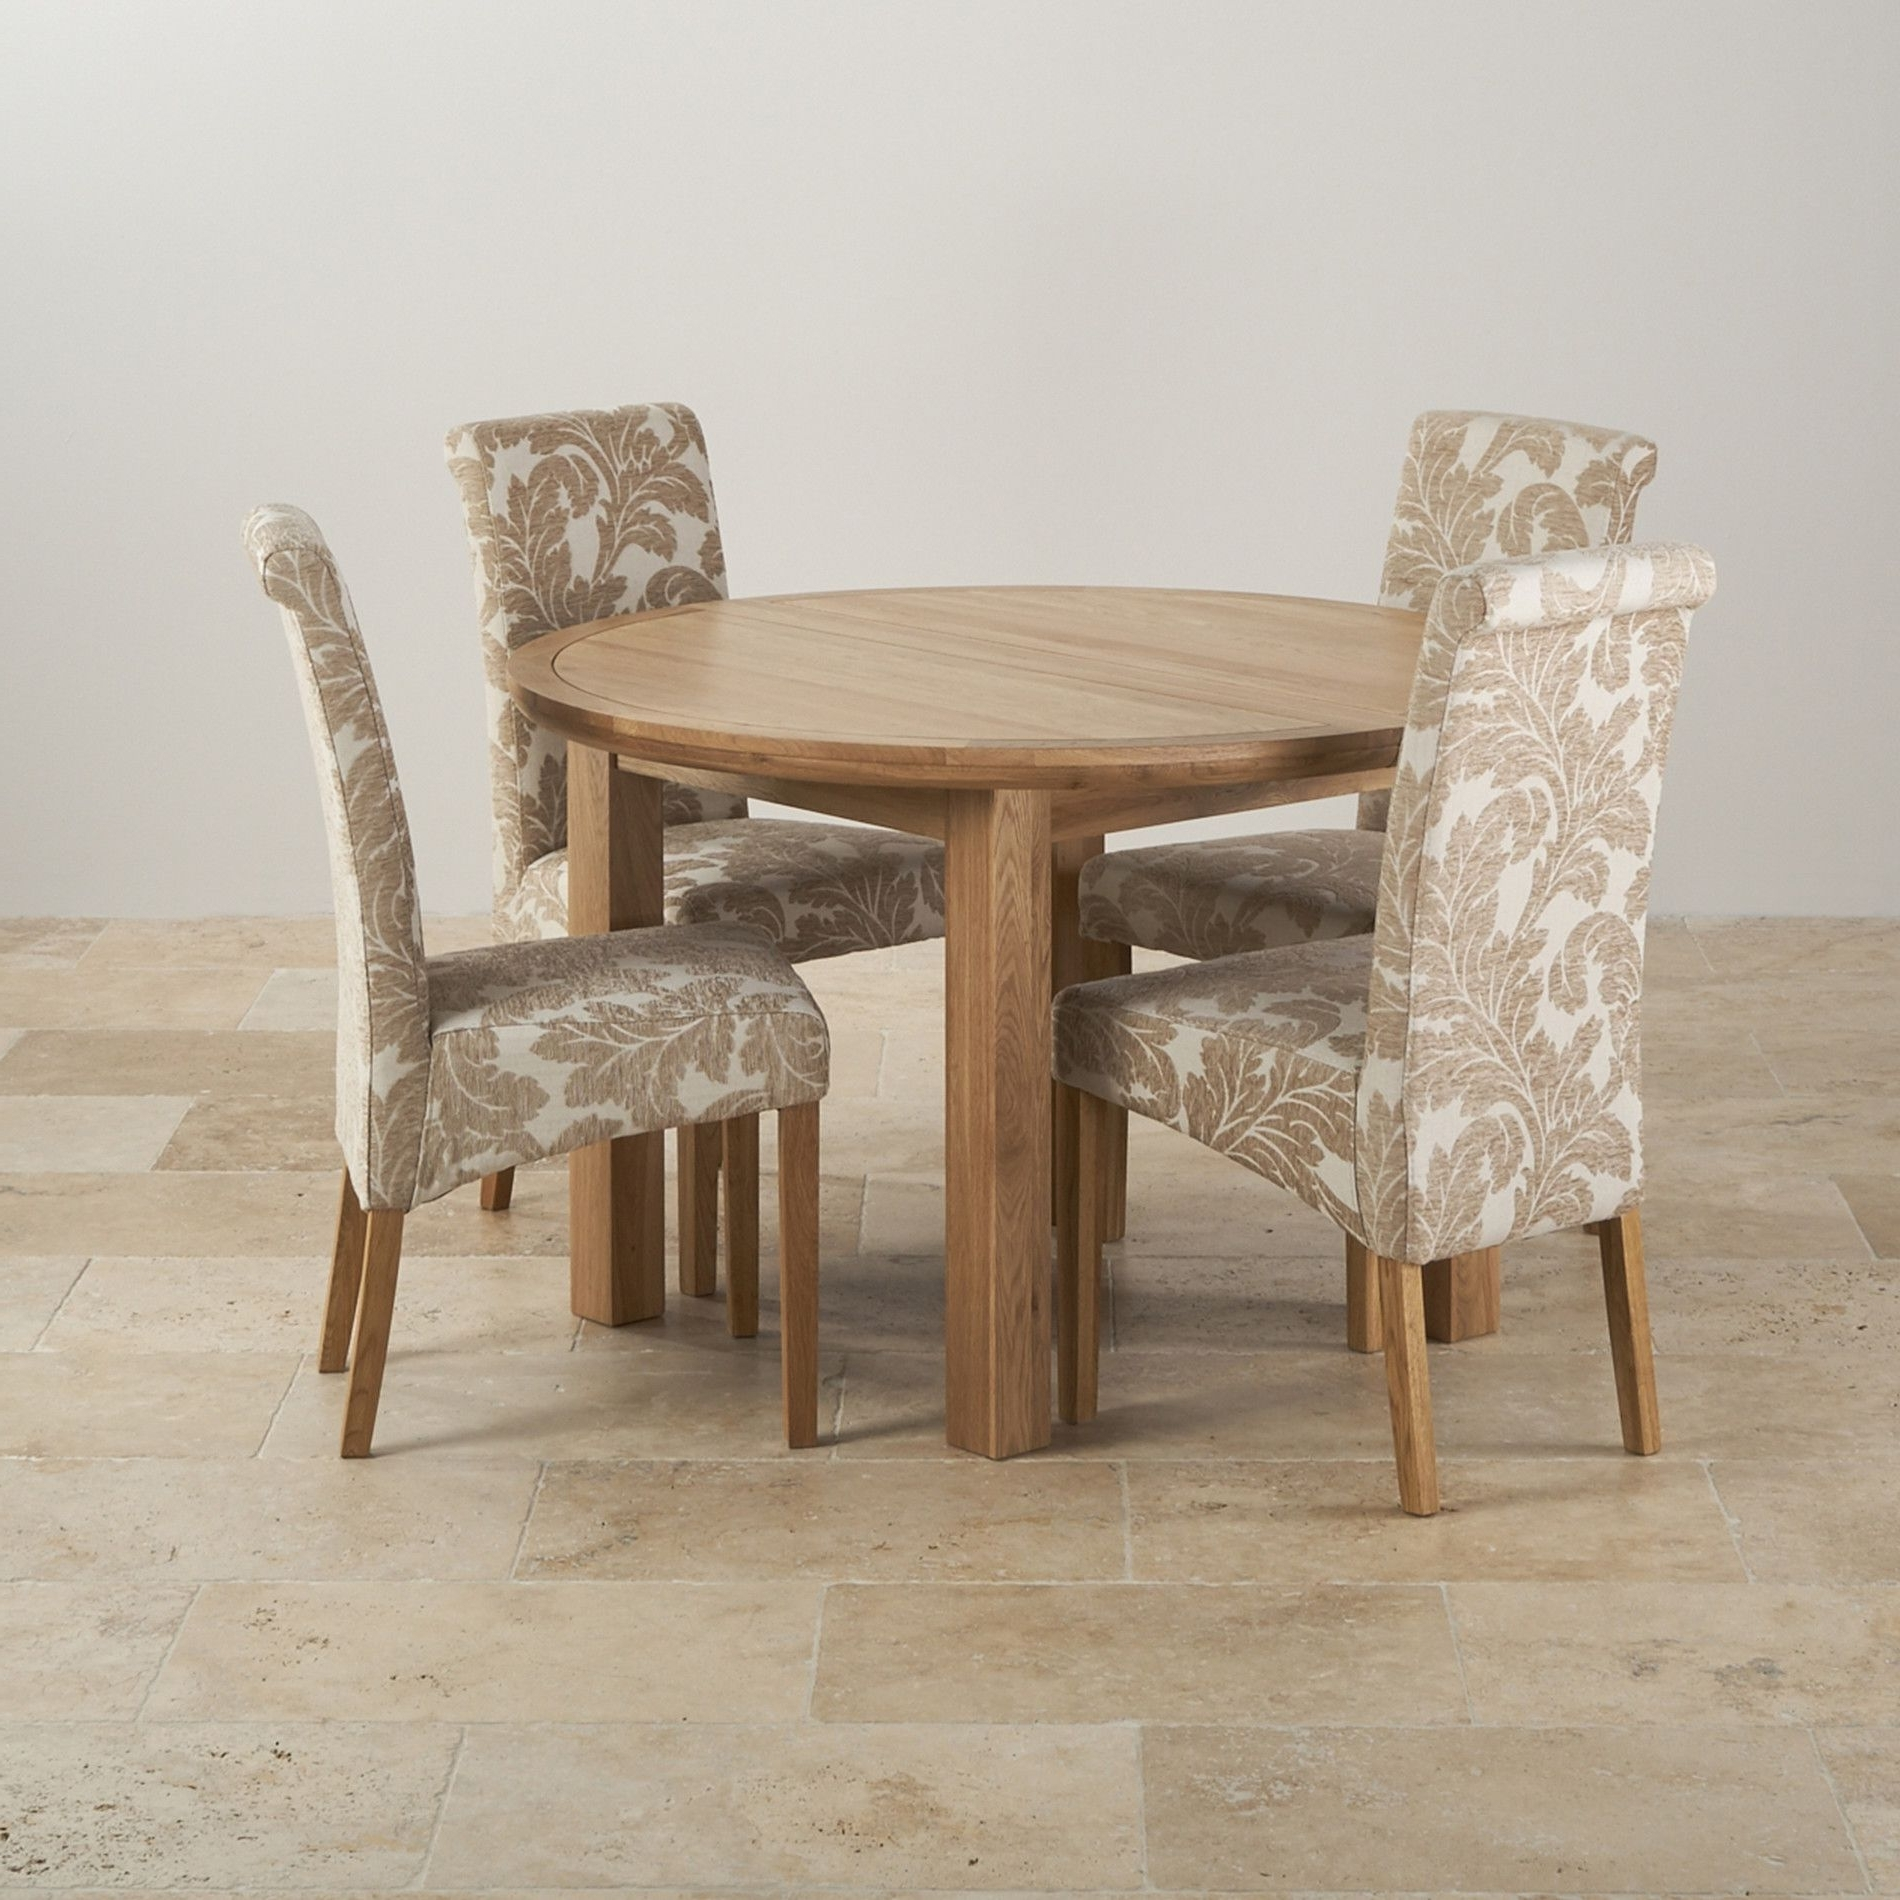 Extending Oak Dining Tables And Chairs within Most Recently Released Knightsbridge Natural Oak Dining Set - 4Ft Round Extending Table & 4